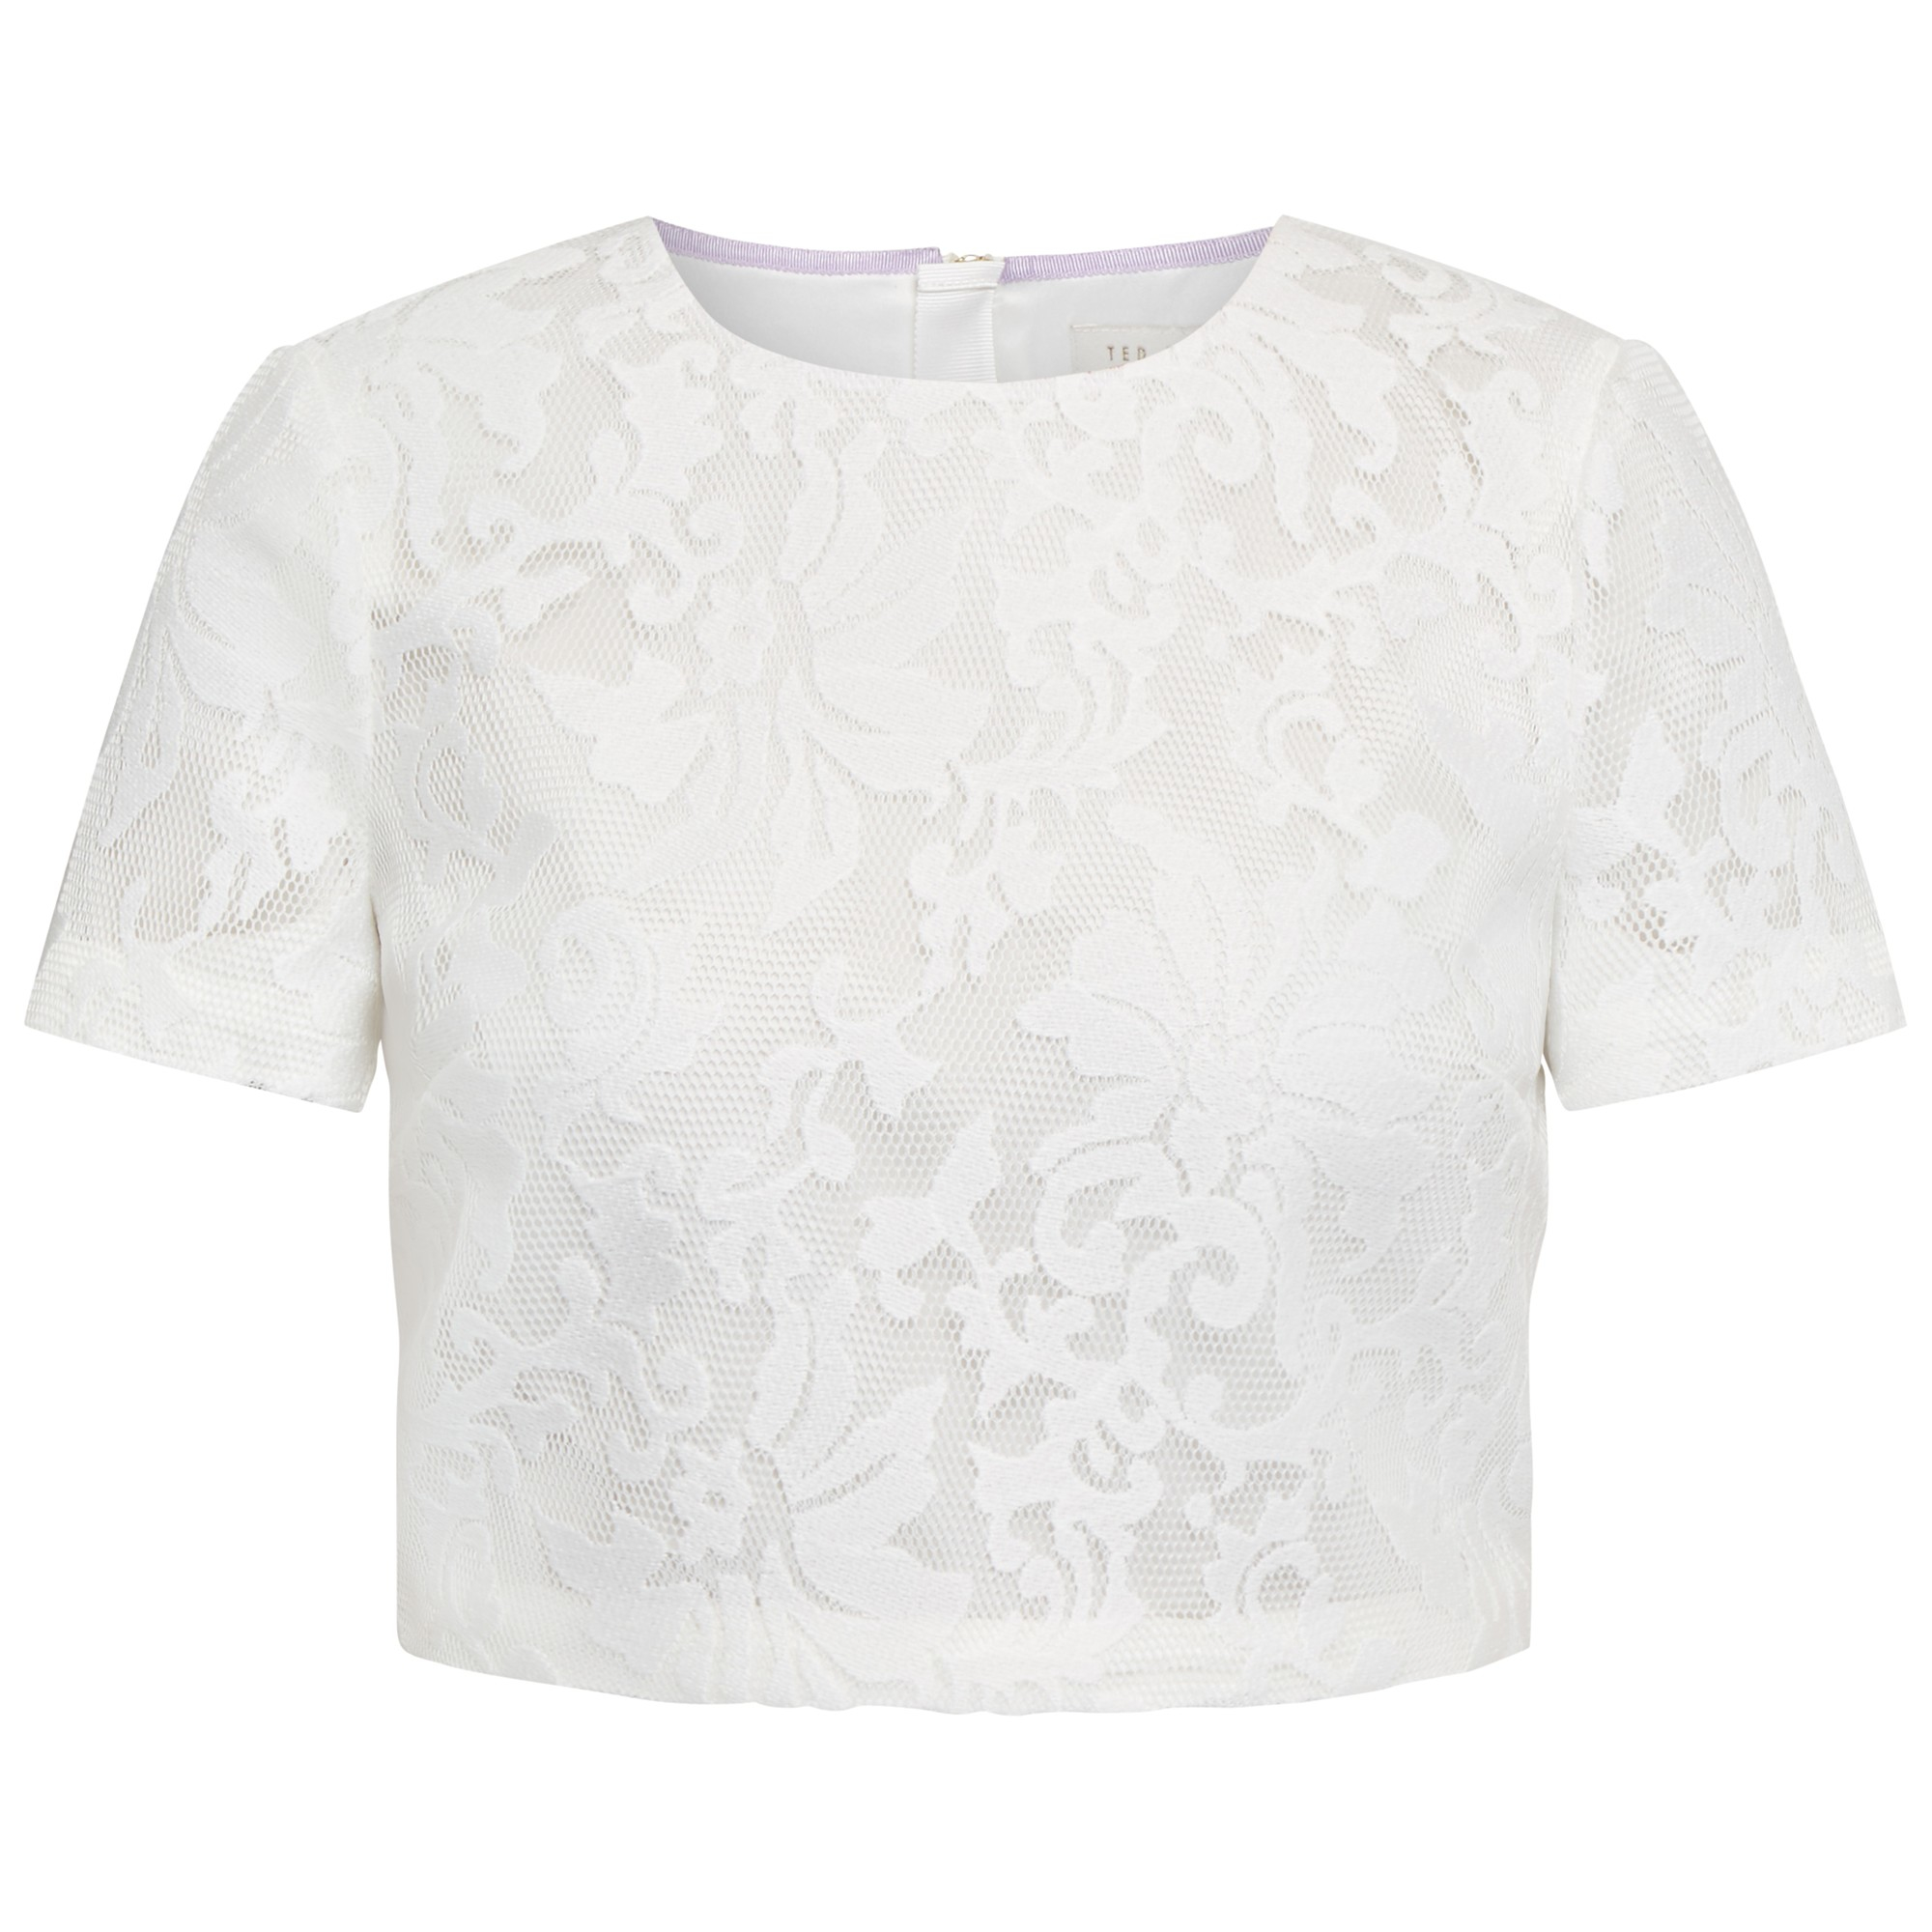 06cfb190042d54 Ted Baker Maire Lace Mesh Crop Top in White - Lyst